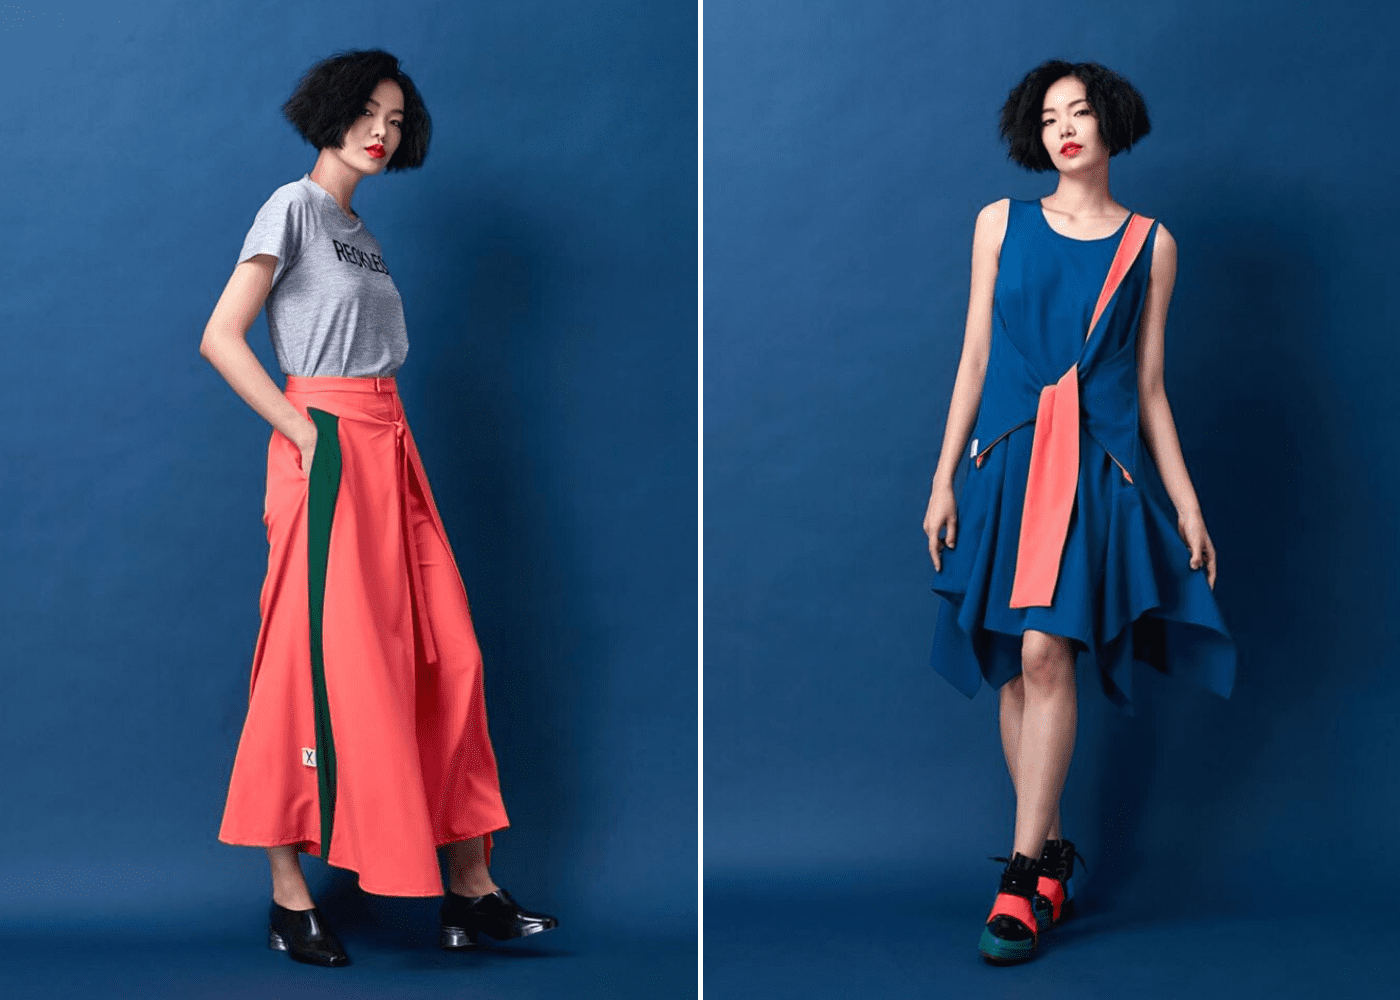 Shop local: Stay home deals from fashion brands: Reckless Ericka